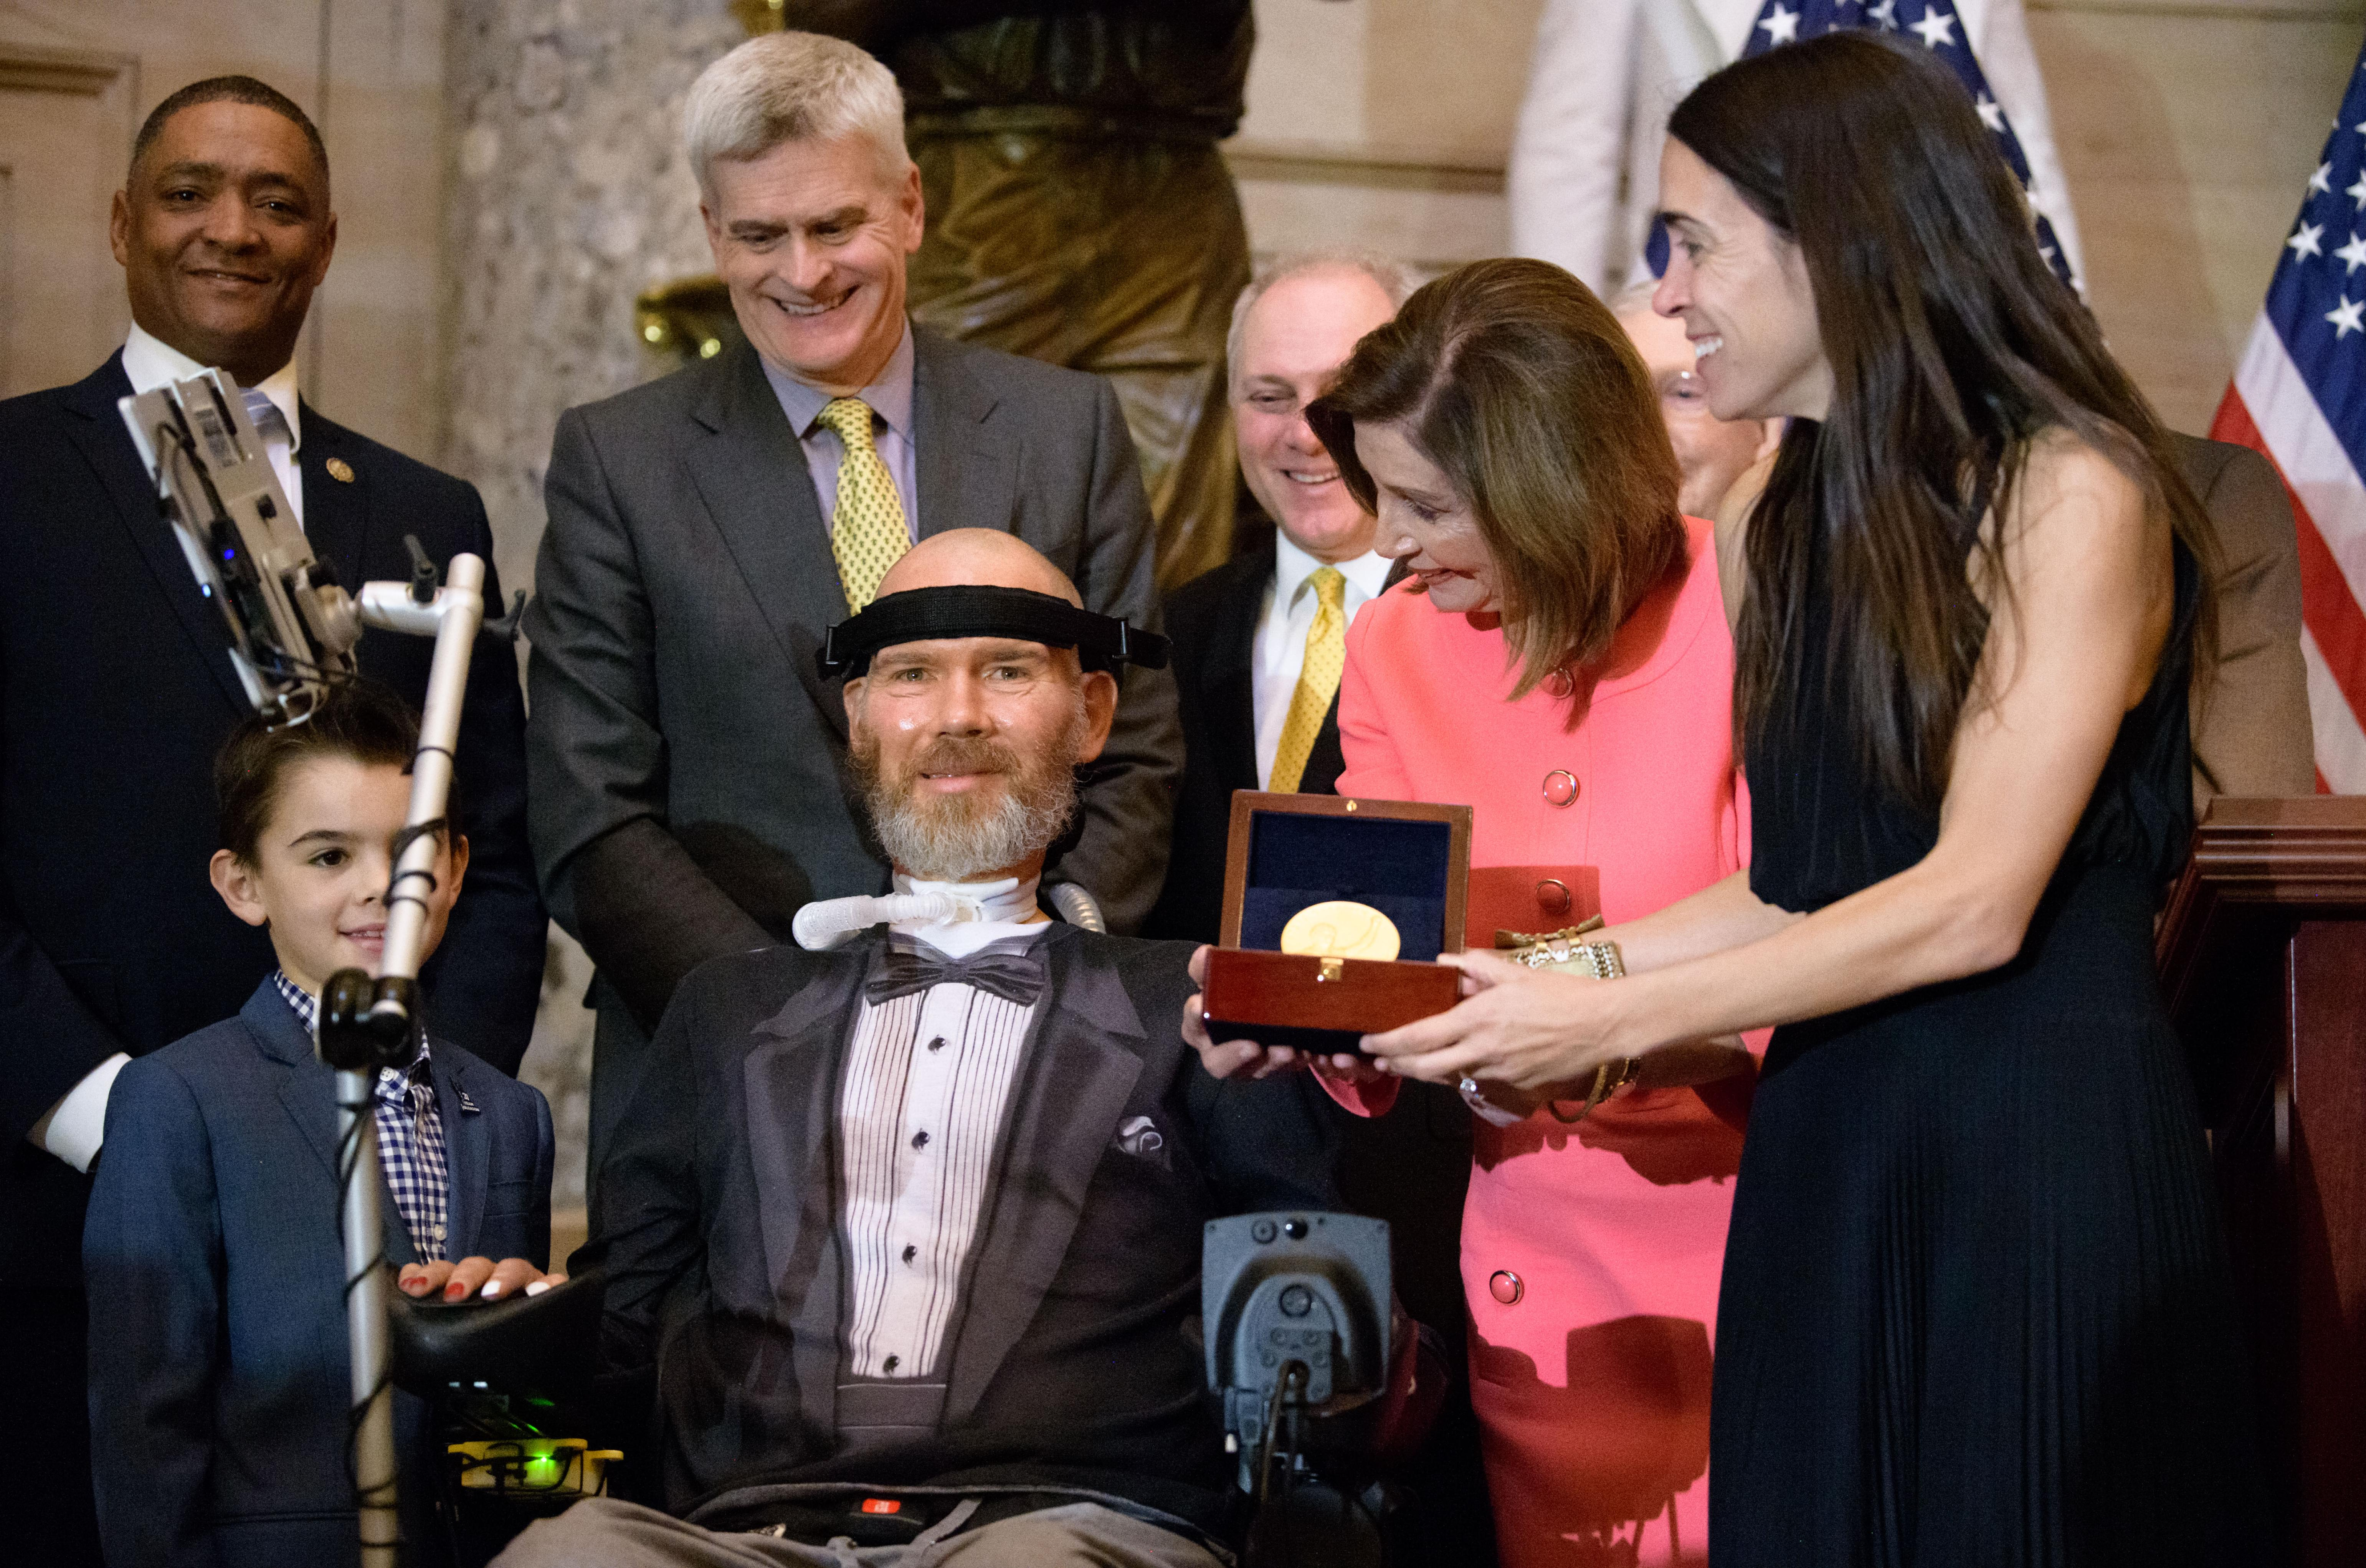 Spokane native Steve Gleason awarded Congressional Gold Medal